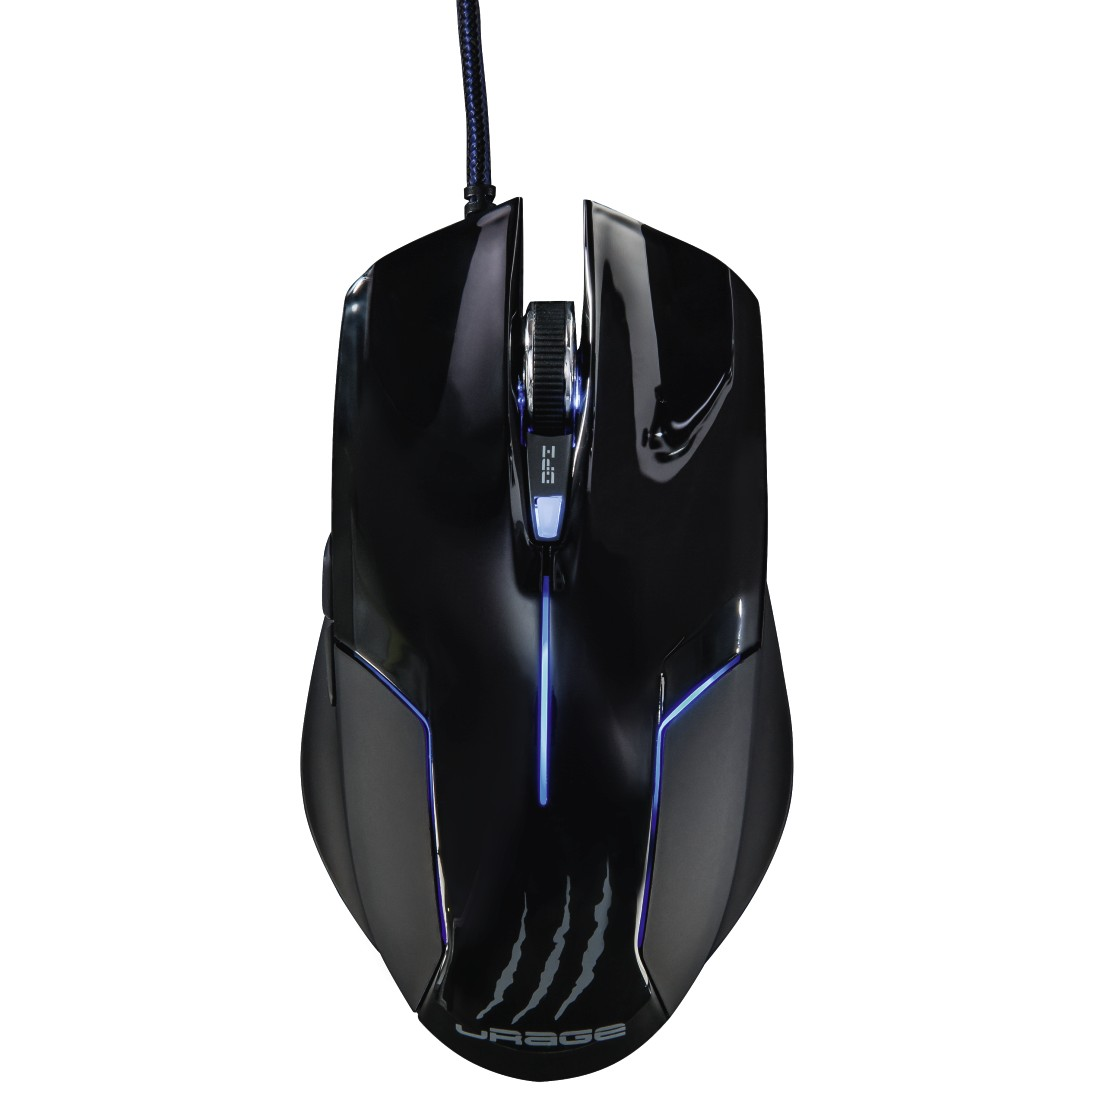 abx2 High-Res Image 2 - Hama, uRage evo. Gaming Mouse